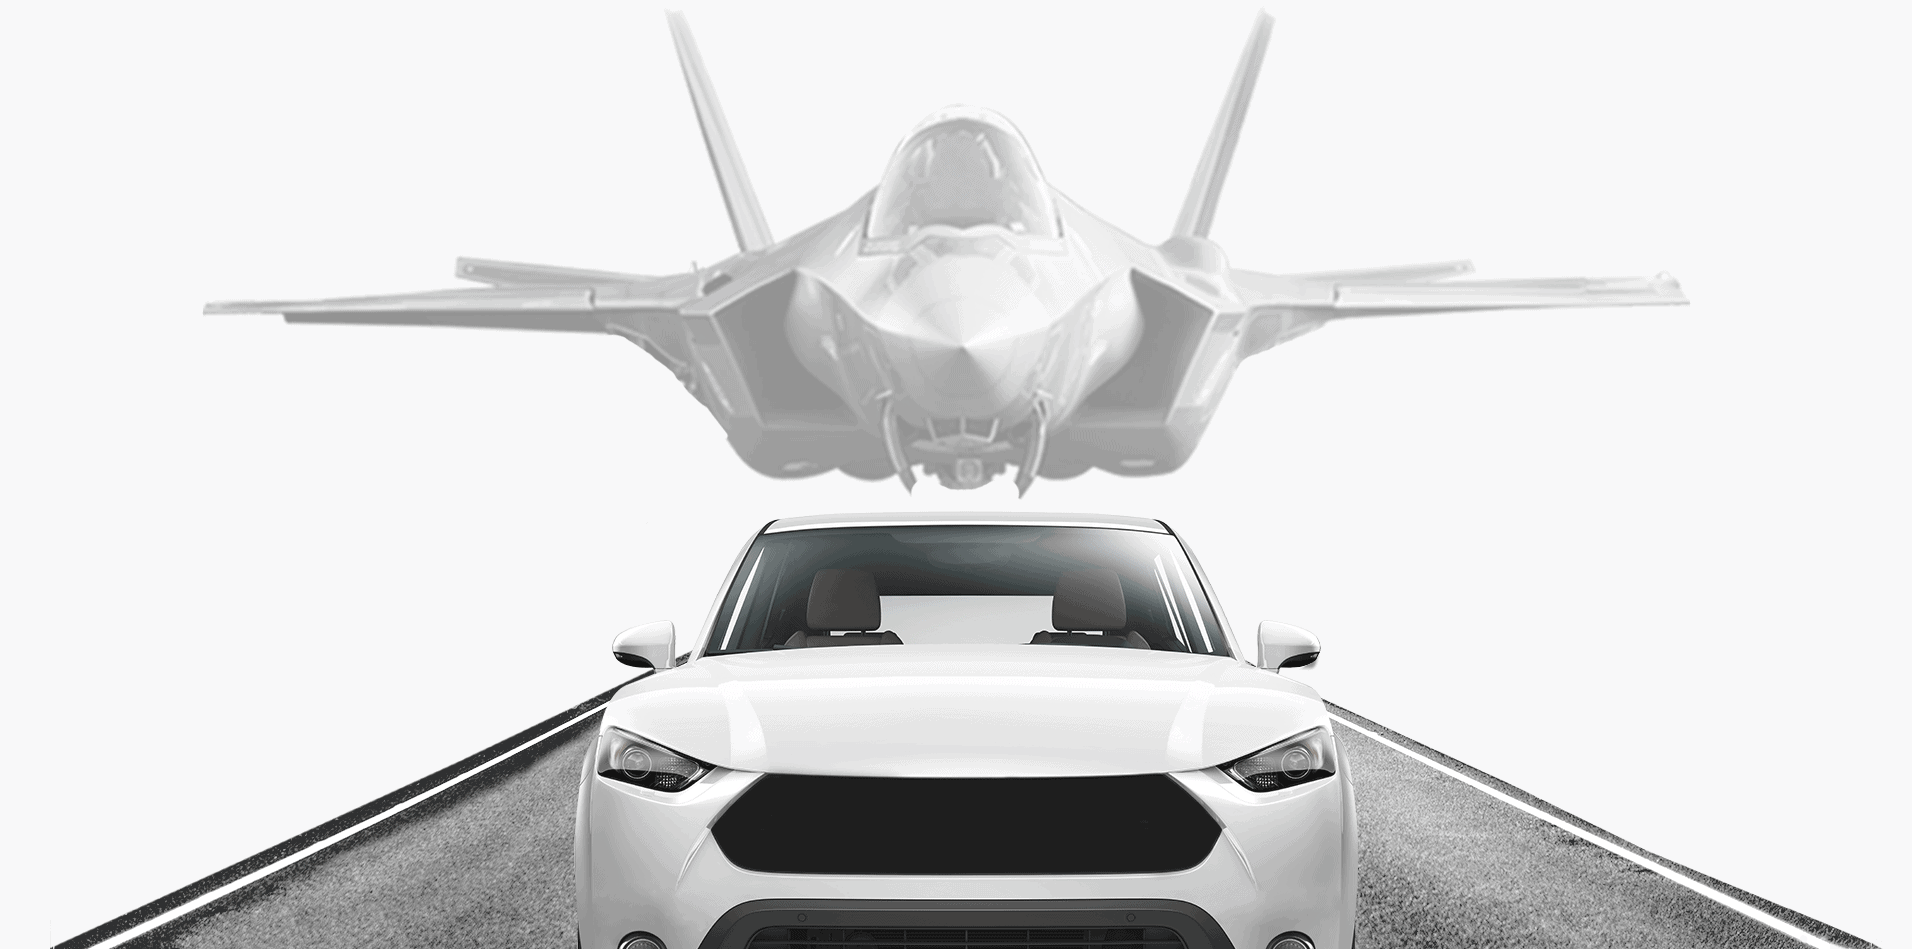 A car with a jet plane above it showing that GuardKnox automotive cybersecurity stems from jet plane security in the Israeli IAF Israeli Air Force